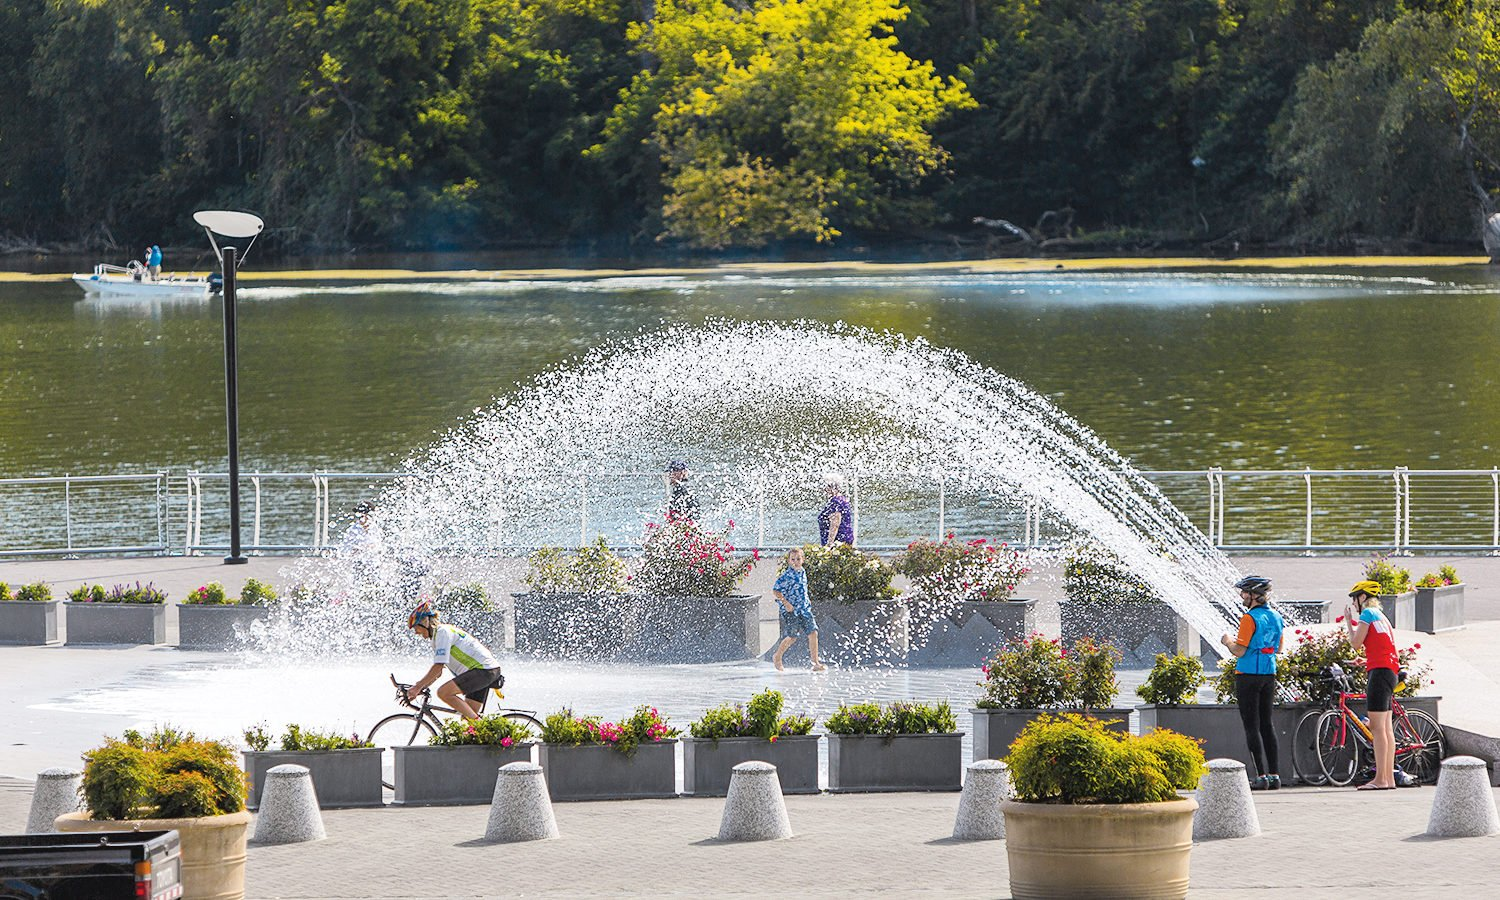 Photograph of Georgetown Waterfront Park by Rob Crandall/Alamy